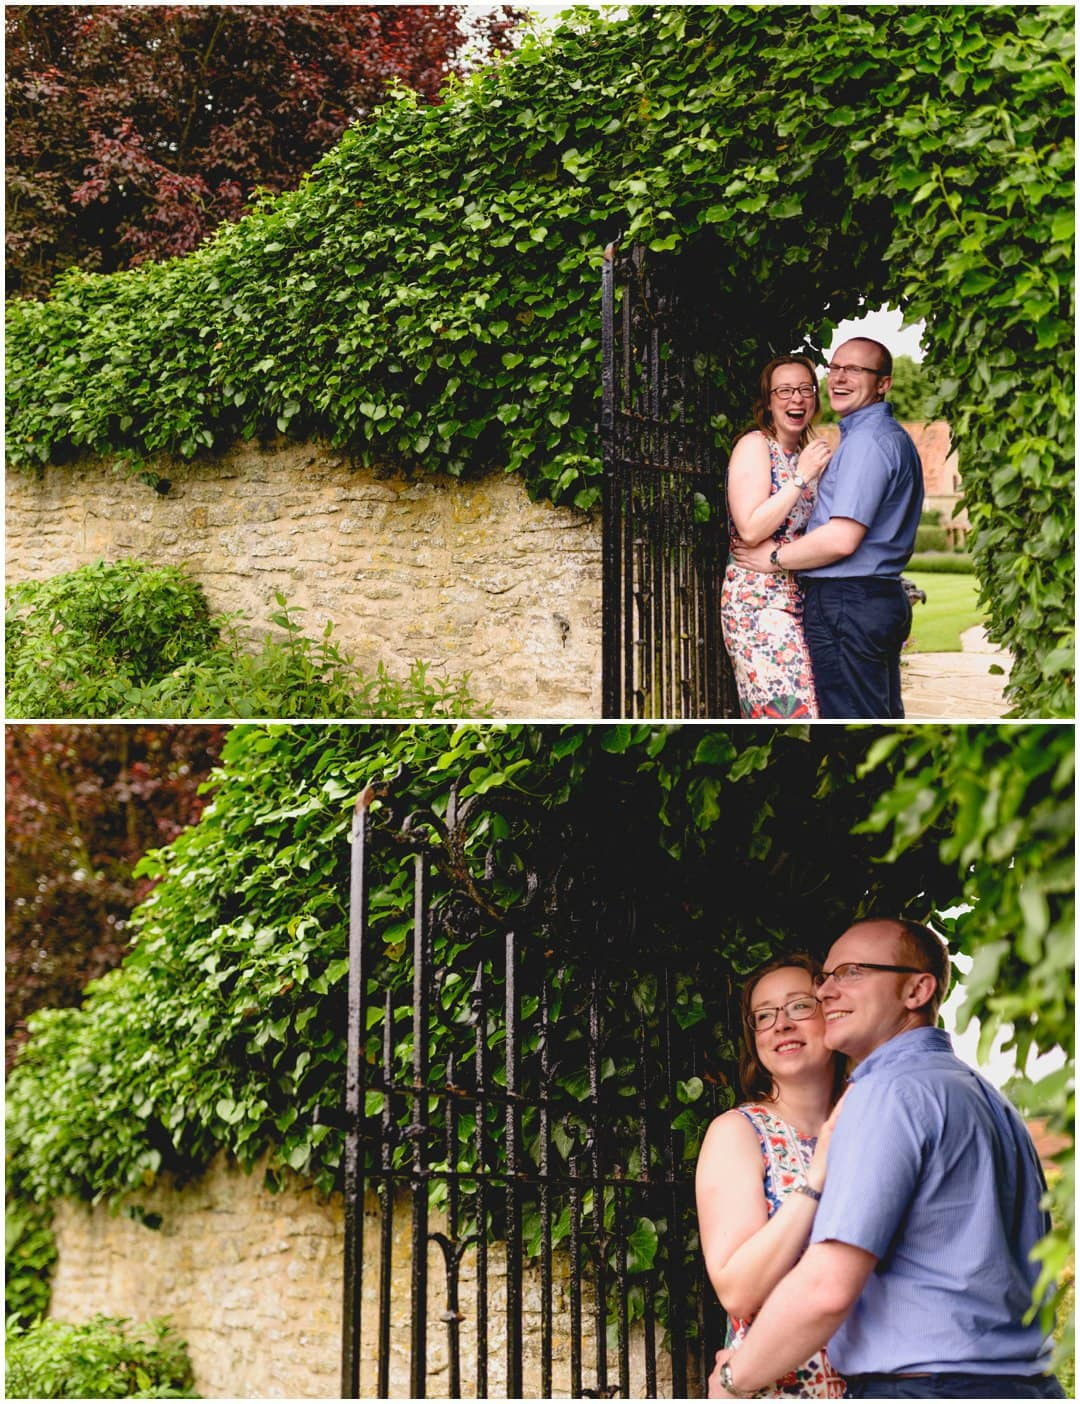 Pre-wedding engagement shoot at Le Manoir, Raymond Le Blanc's restaurant in Oxford by West Midlands Wedding Photographer Lisa Carpenter Photography